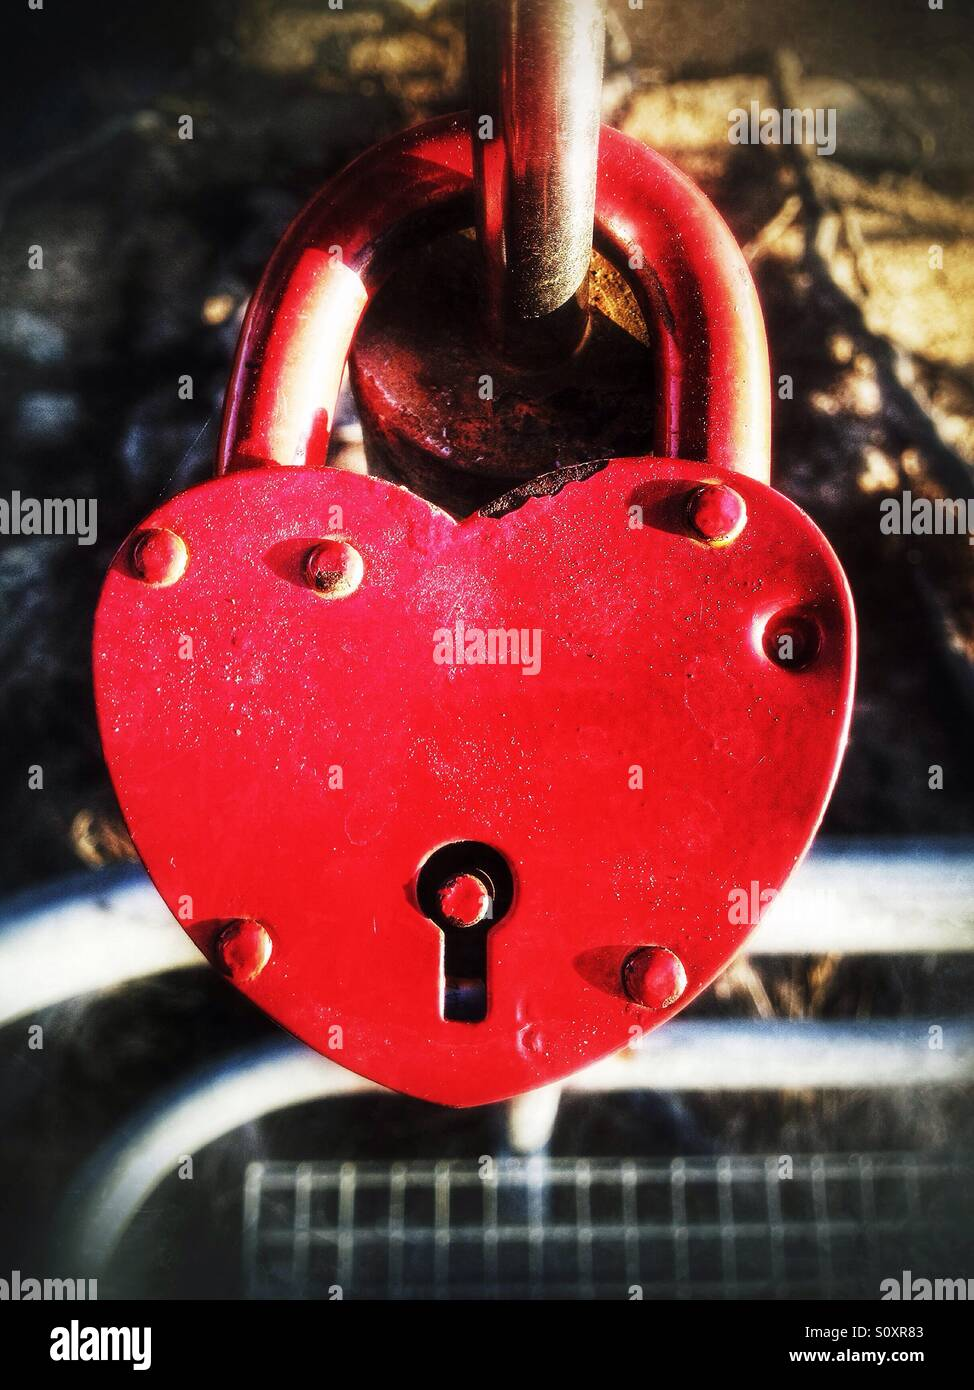 Lock with red heart shape on a bridge - Stock Image